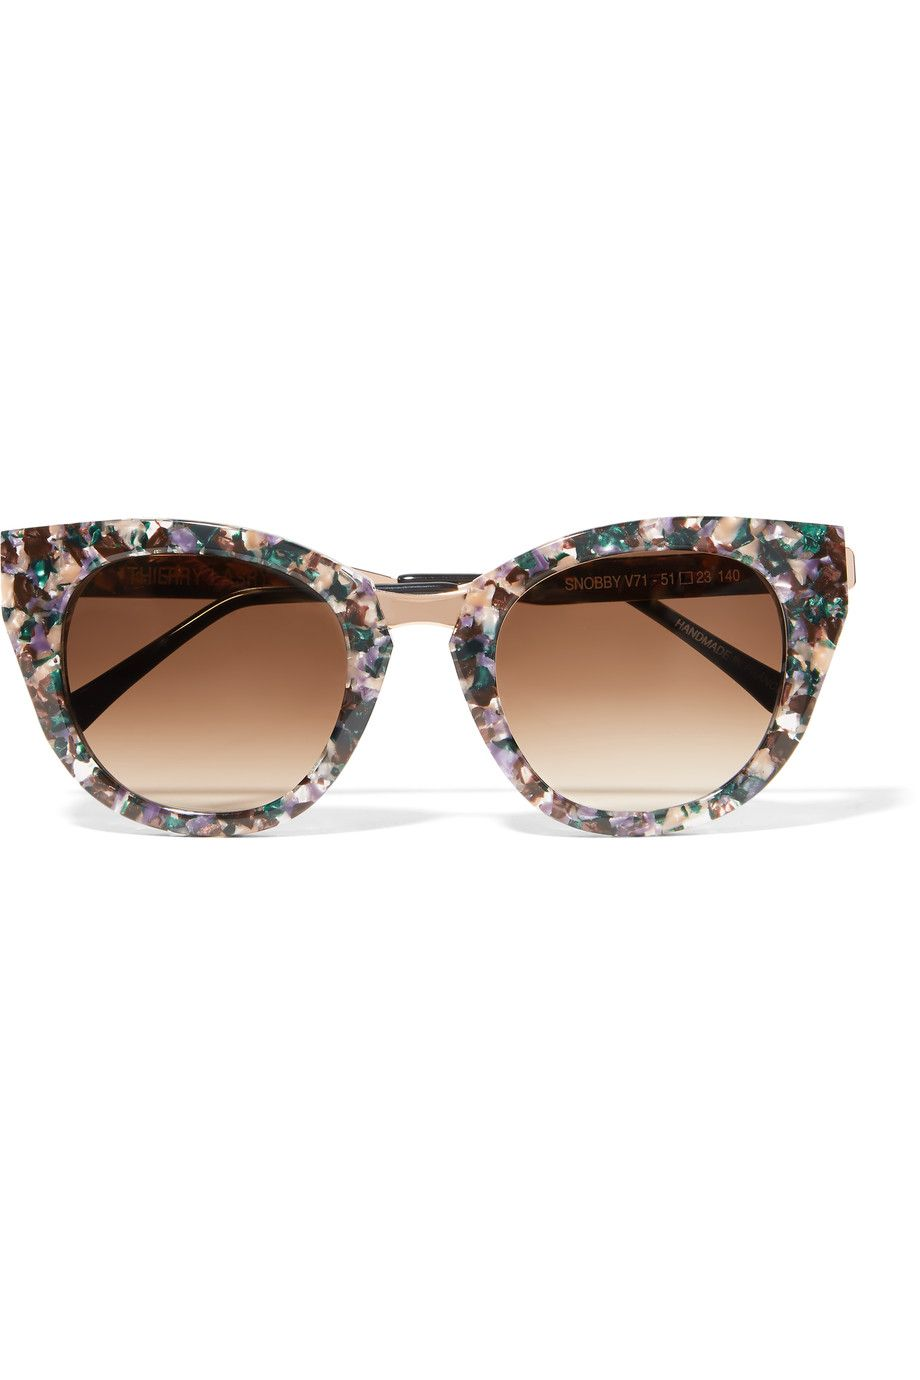 THIERRY LASRY Snobby cat-eye acetate and rose gold-tone sunglasses ... fcc8fa4460d3